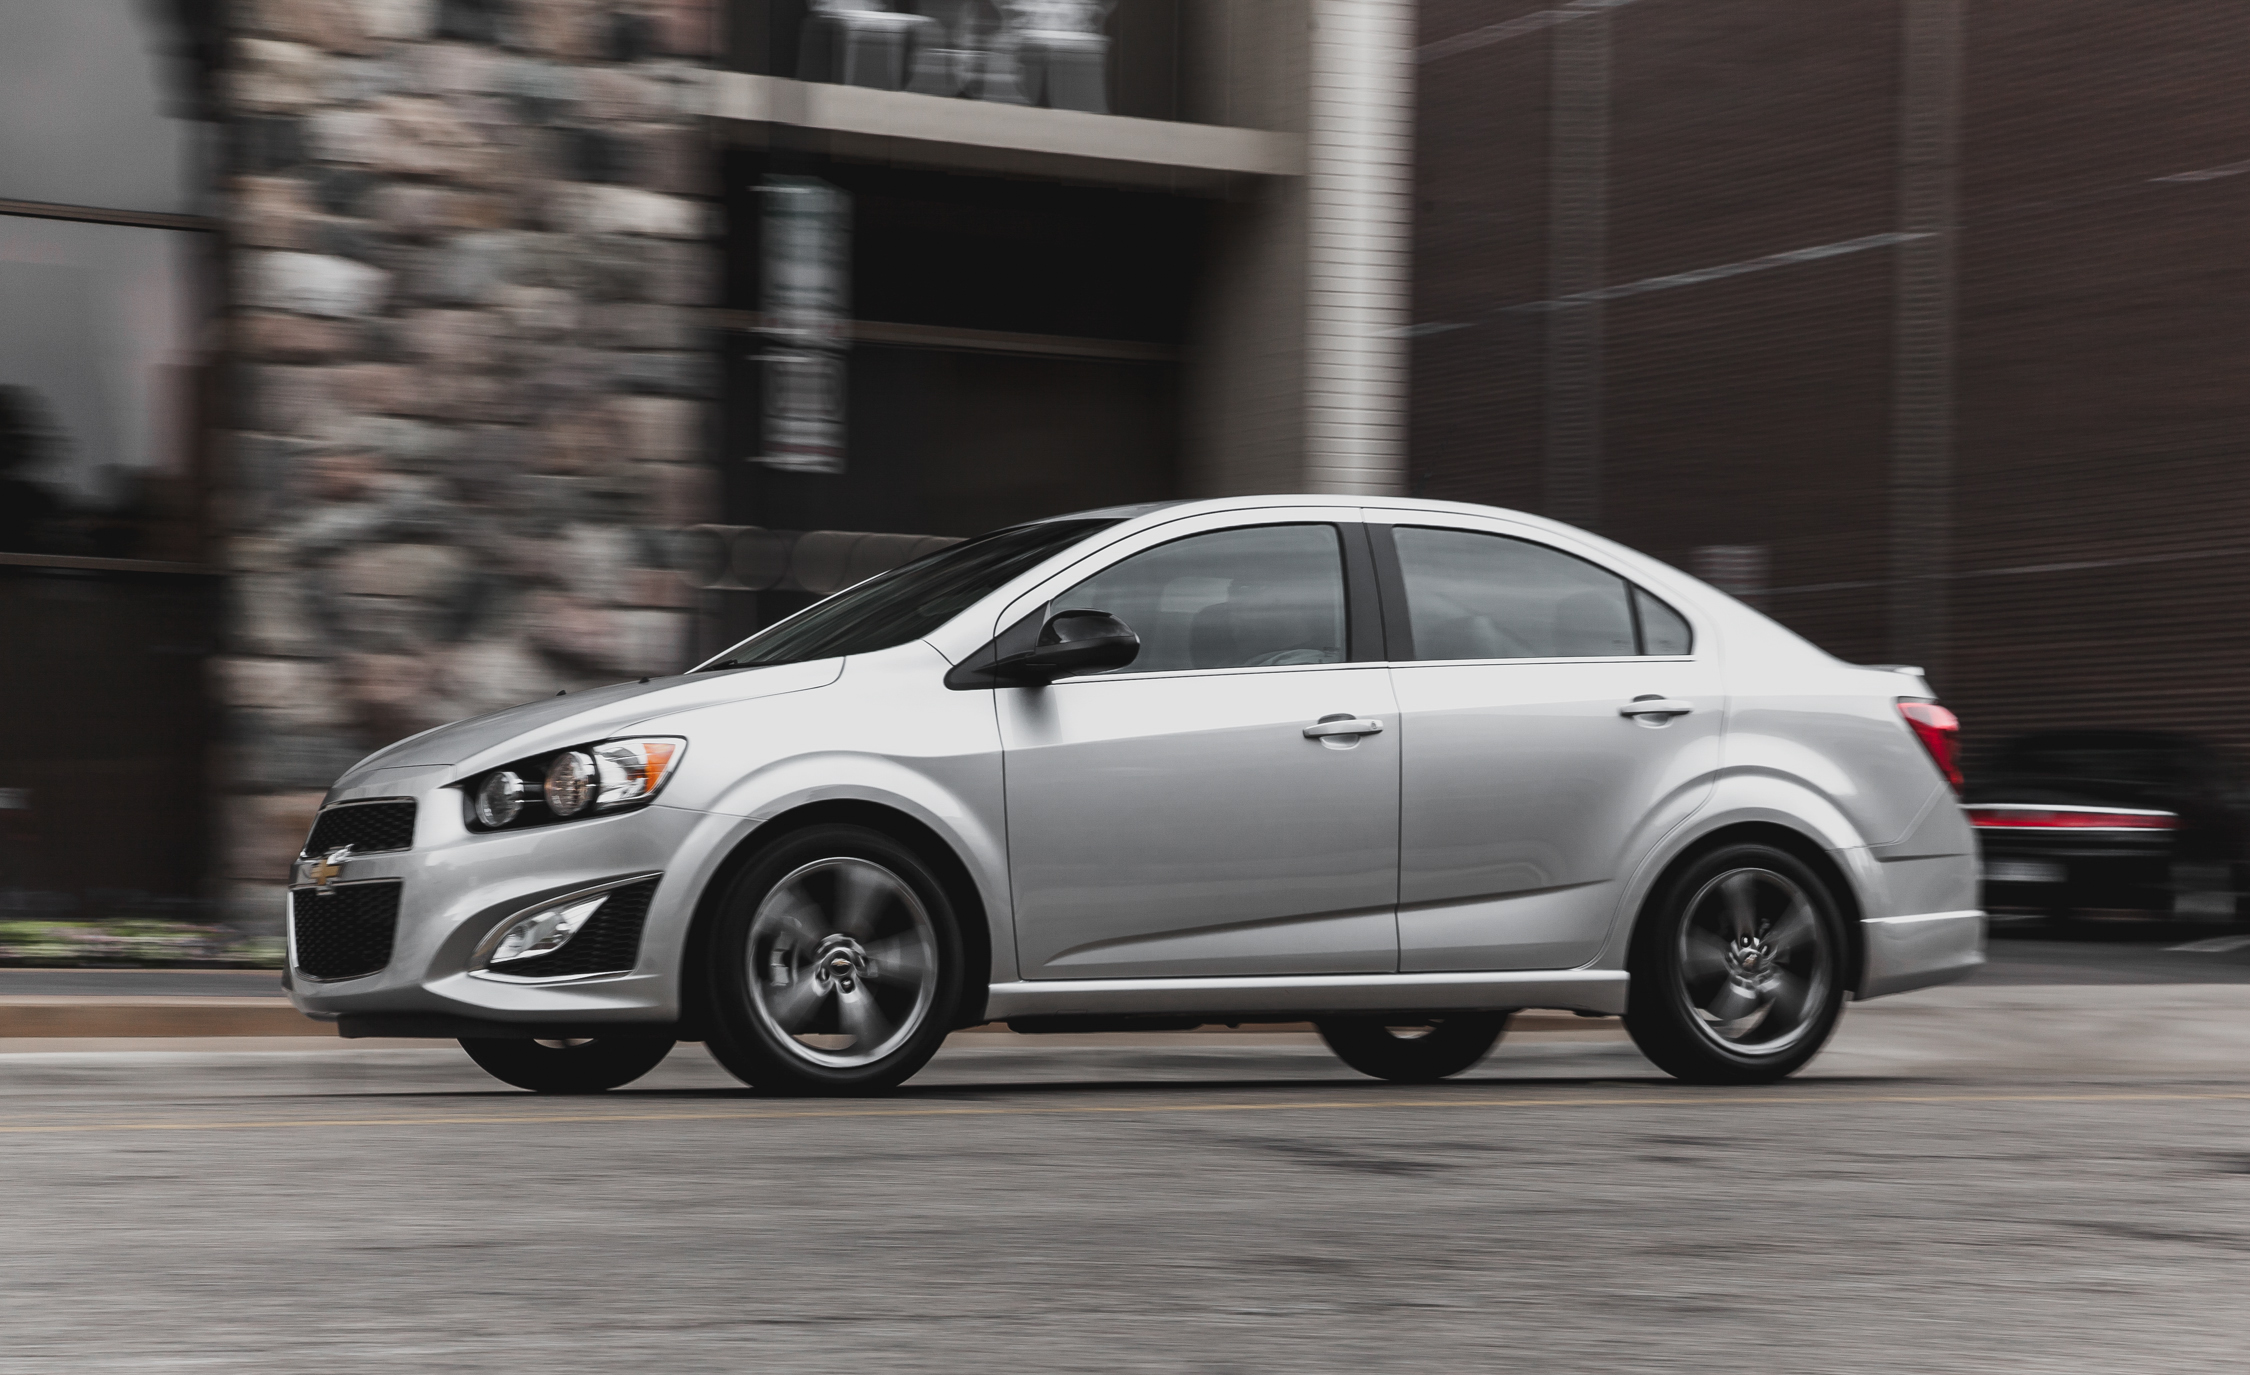 2014 Chevrolet Sonic RS Sedan (Photo 14 of 27)